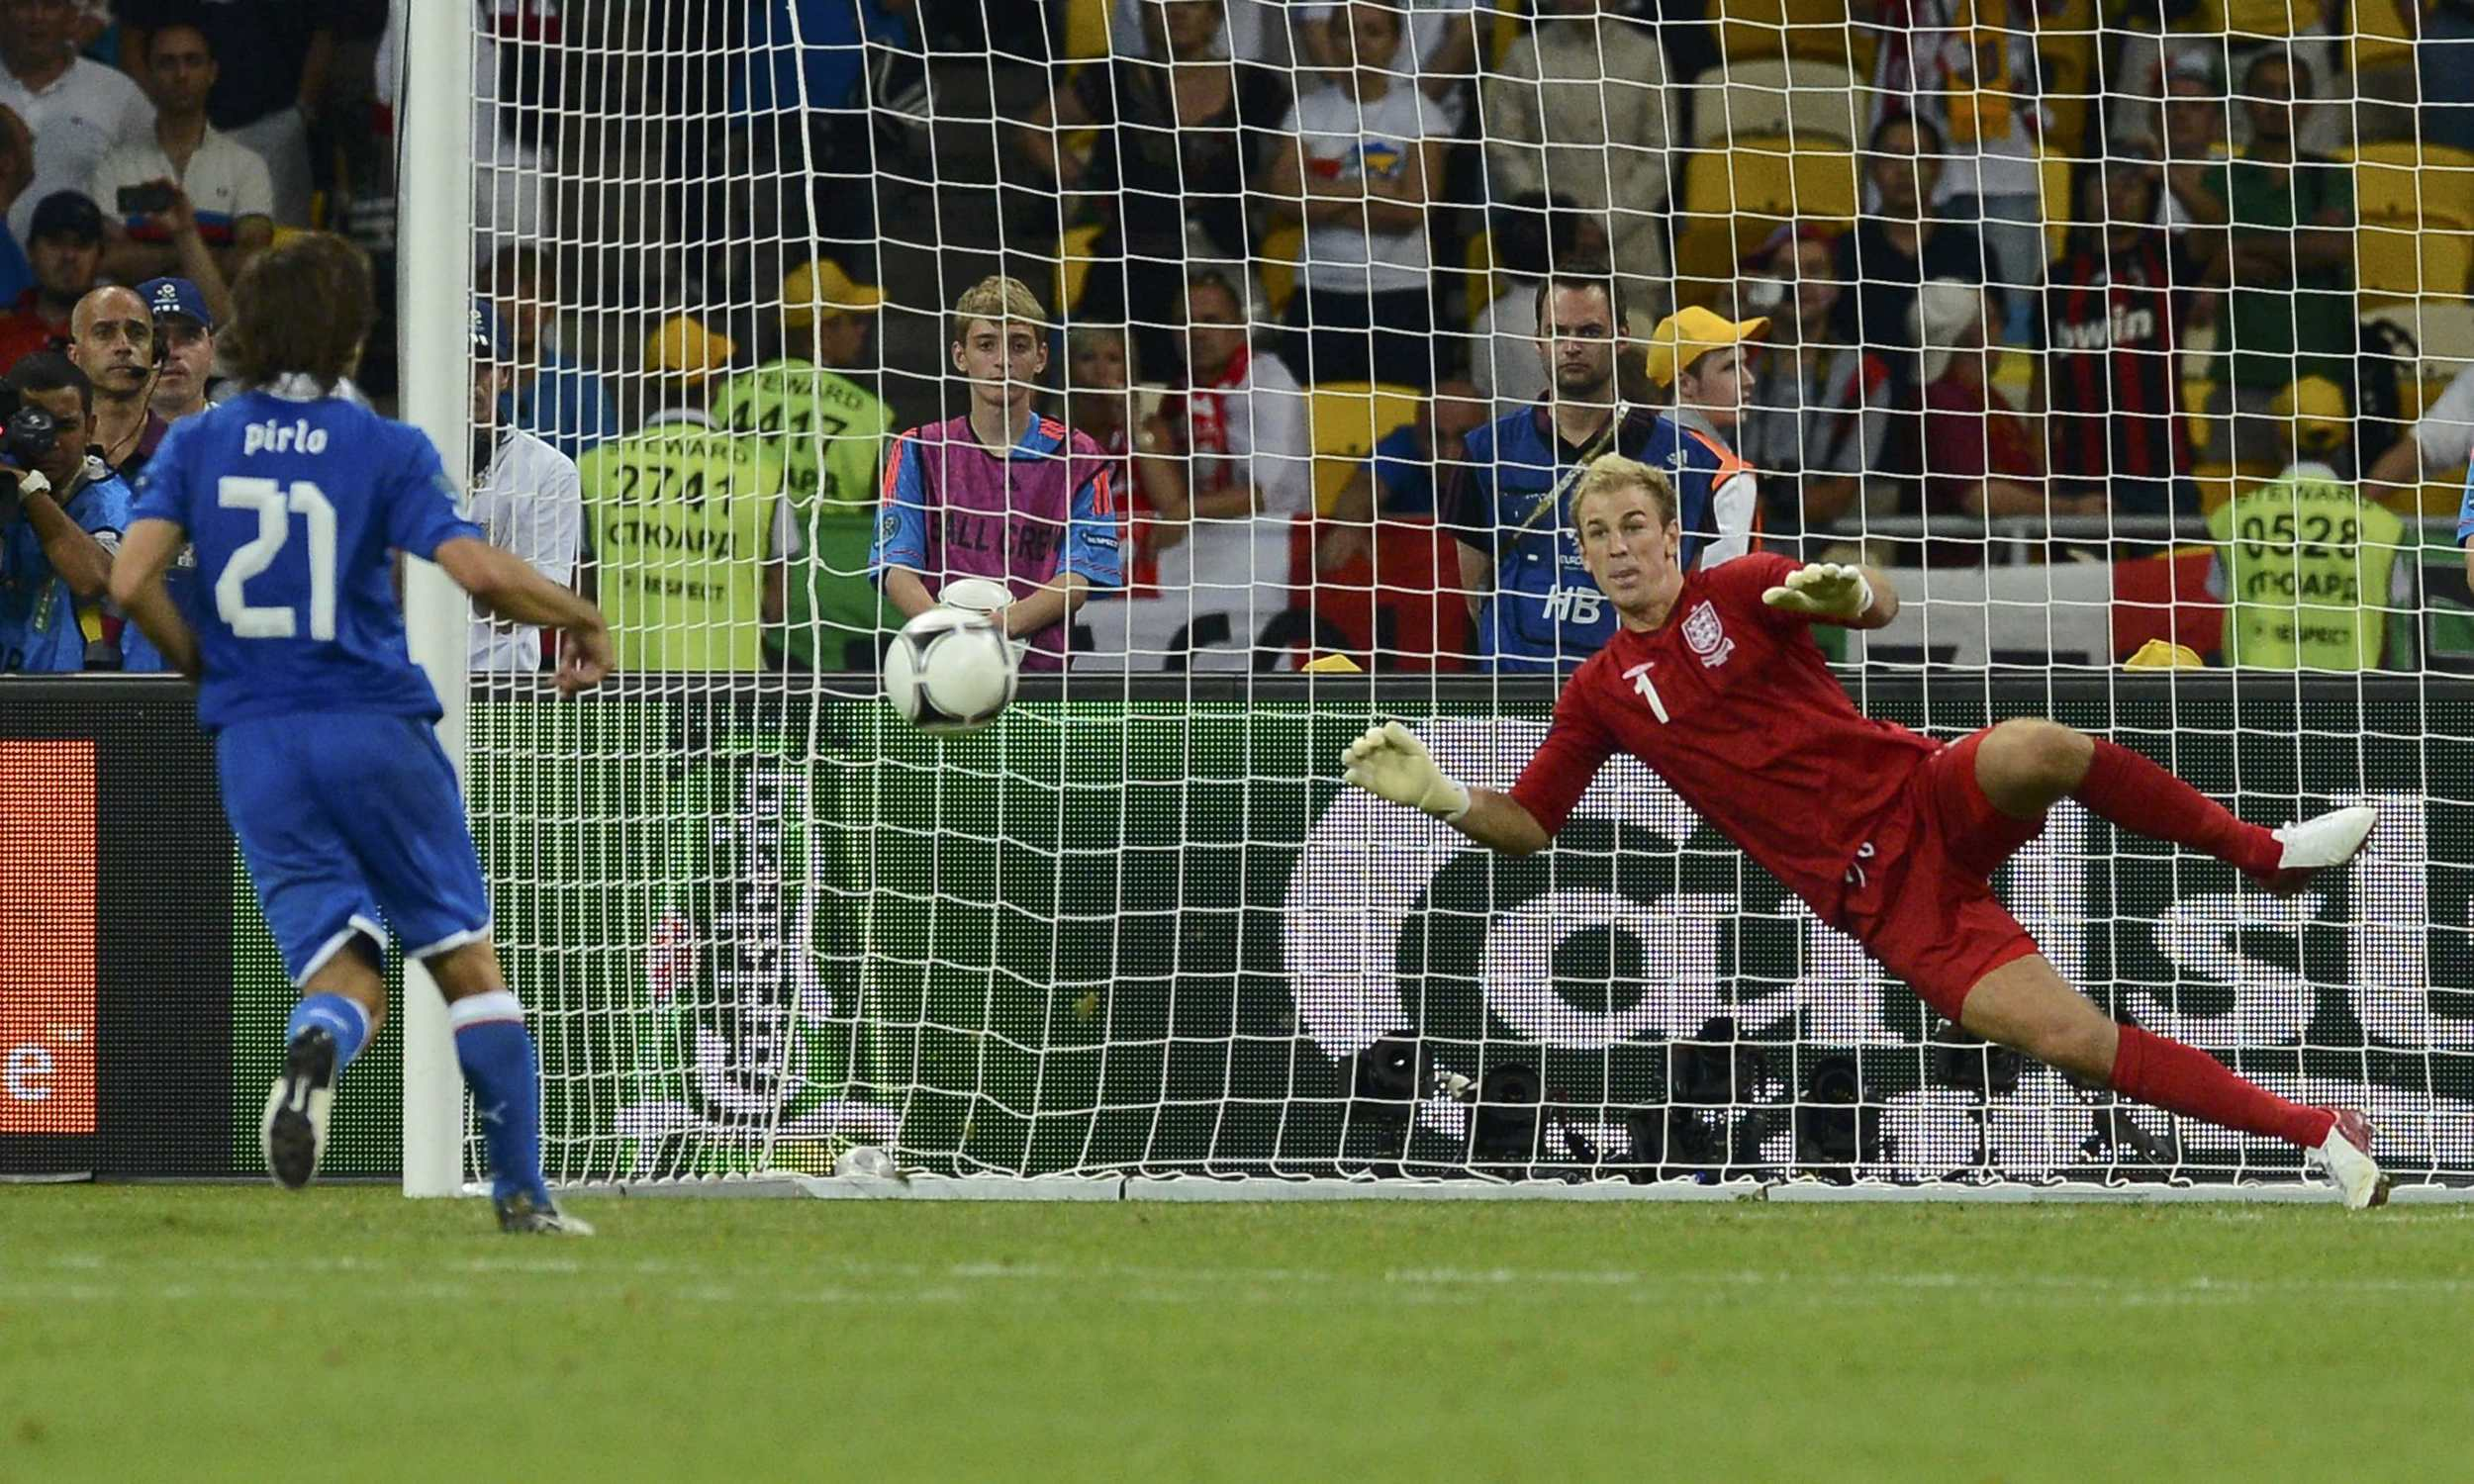 Italy's Andrea Pirlo scores a Panenka penalty past England's goalkeeper Joe Hart during the penalty shoot-out of their Euro 2012 quarter-final match at the Olympic Stadium in Kiev. Image supplied by Action Images / Nigel Roddis.